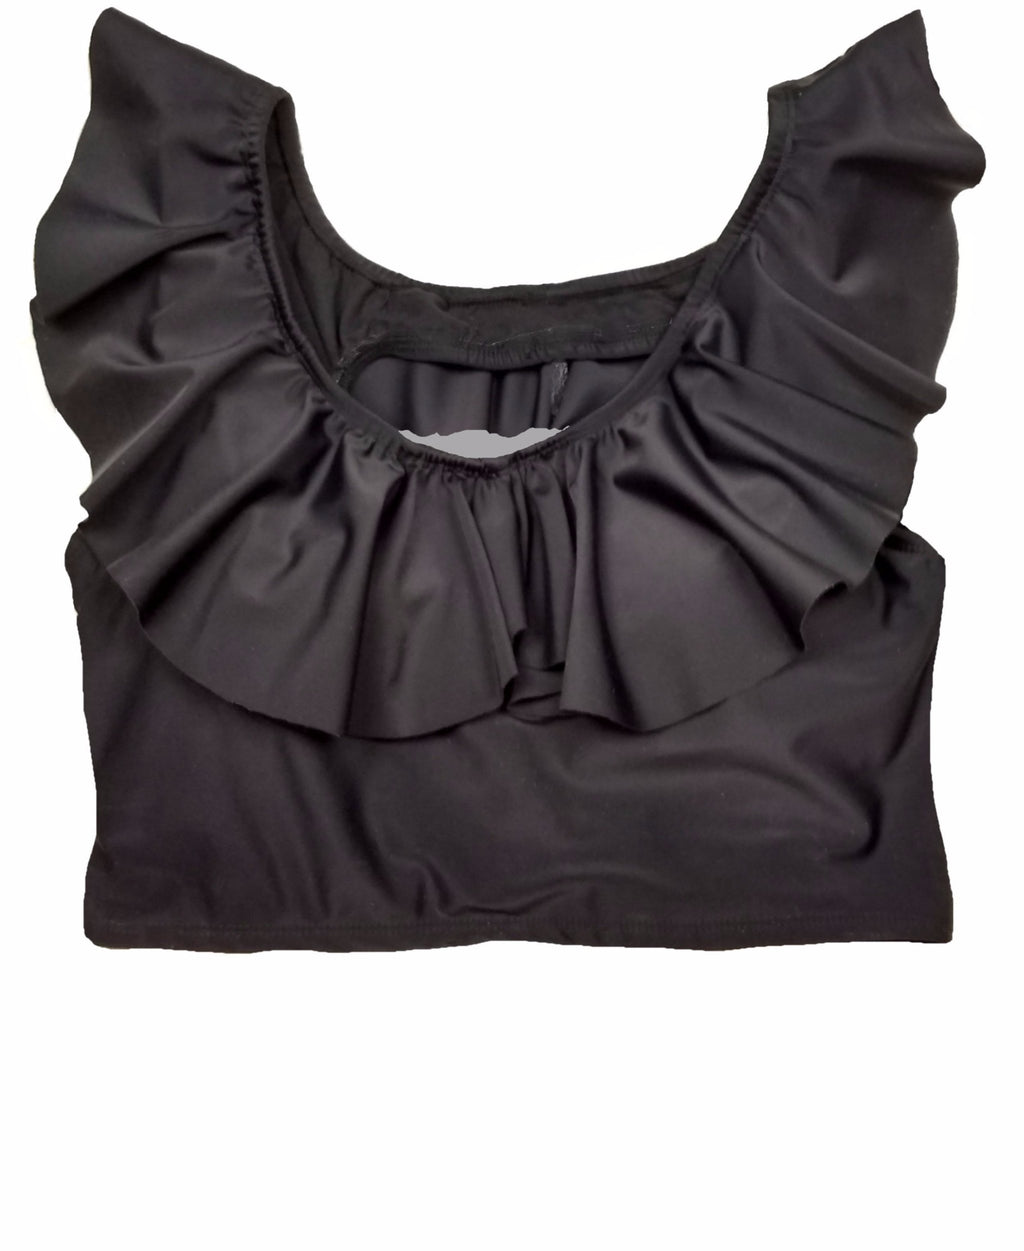 Ladies & Teens Frill Top